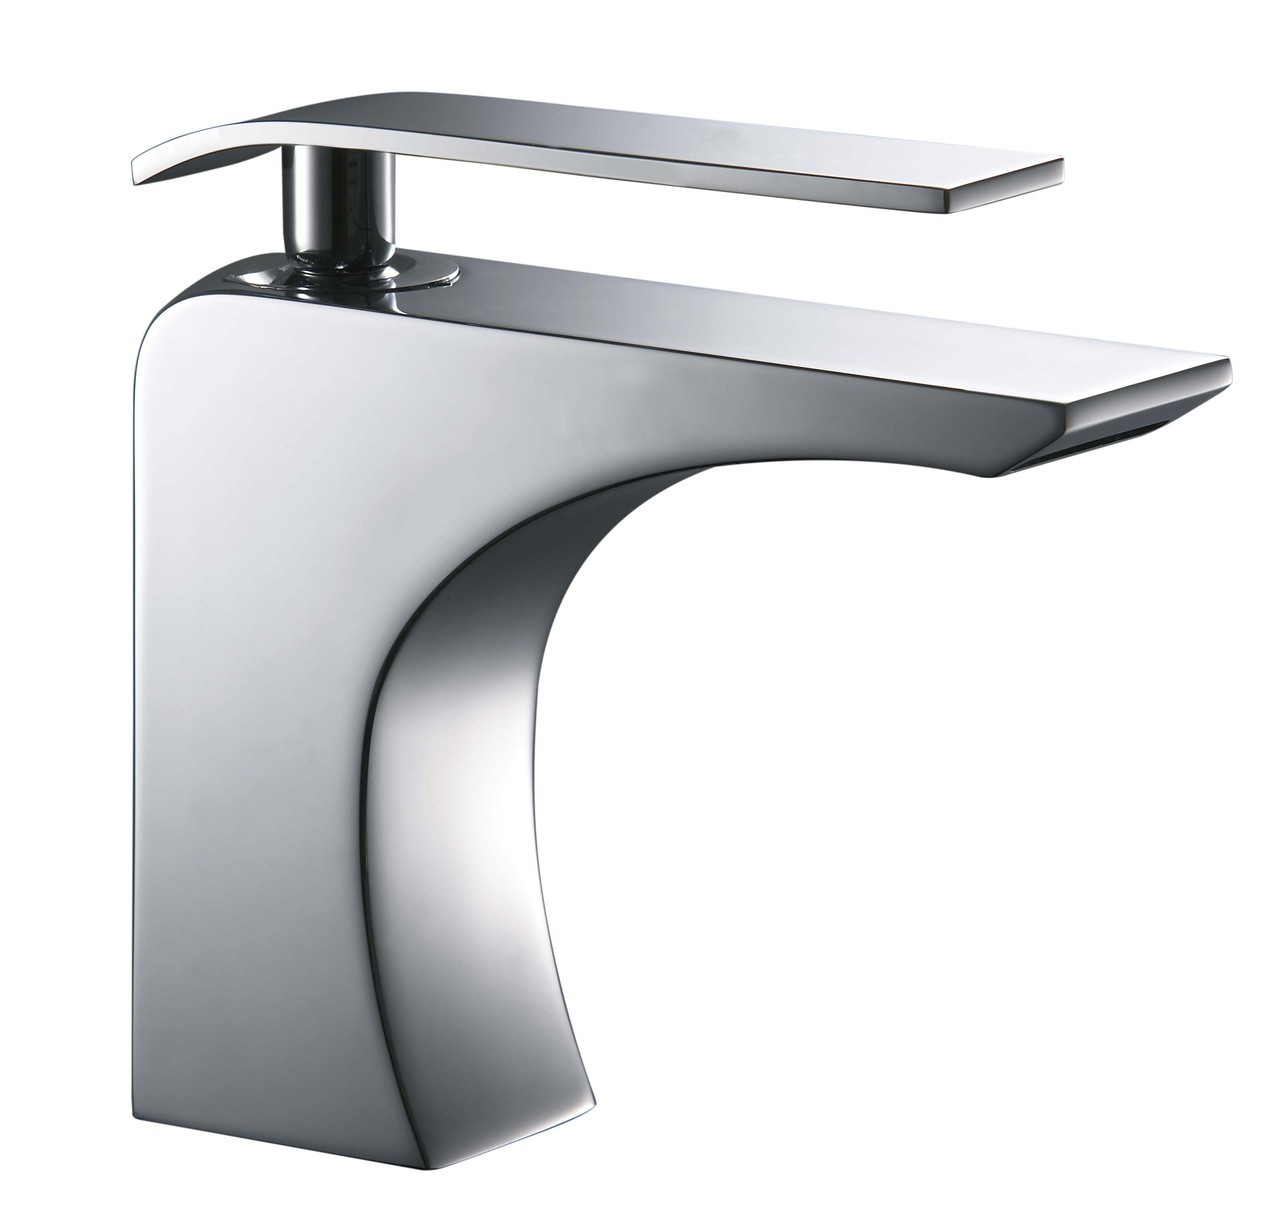 italian bathroom faucets. Image 1 Italian Bathroom Faucets A